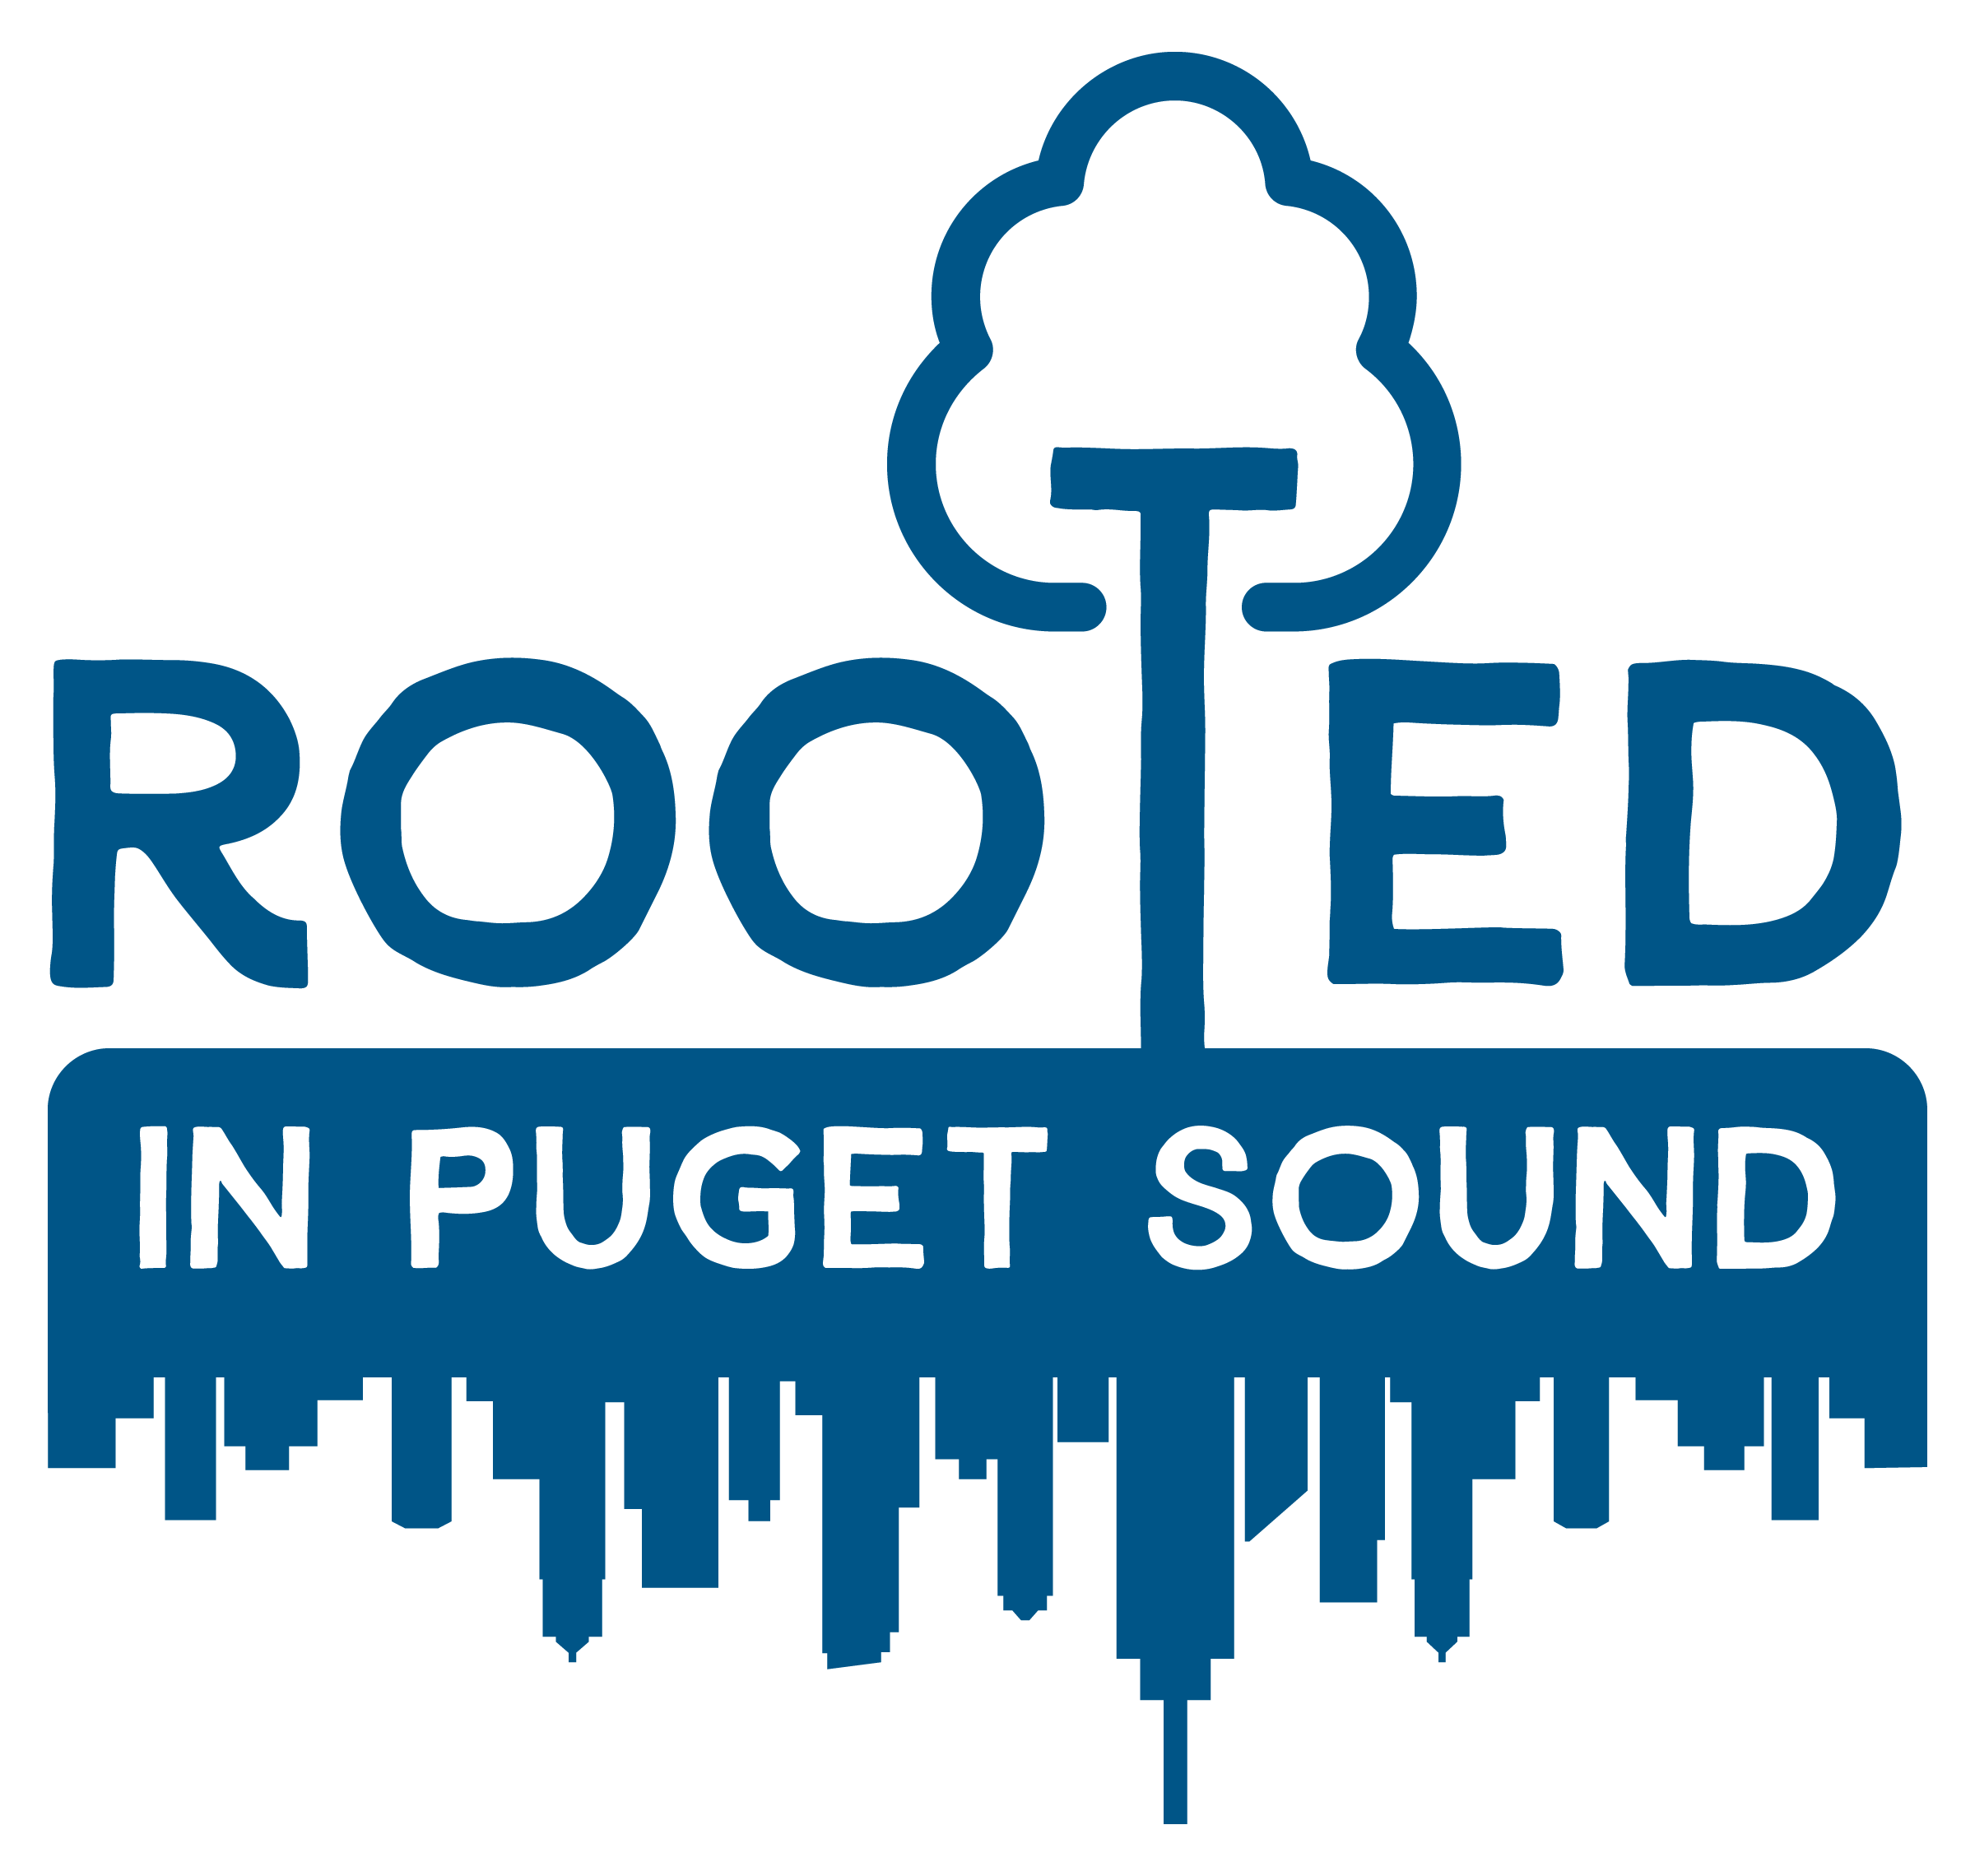 Rooted-in-PS_logo_deep-waters.png